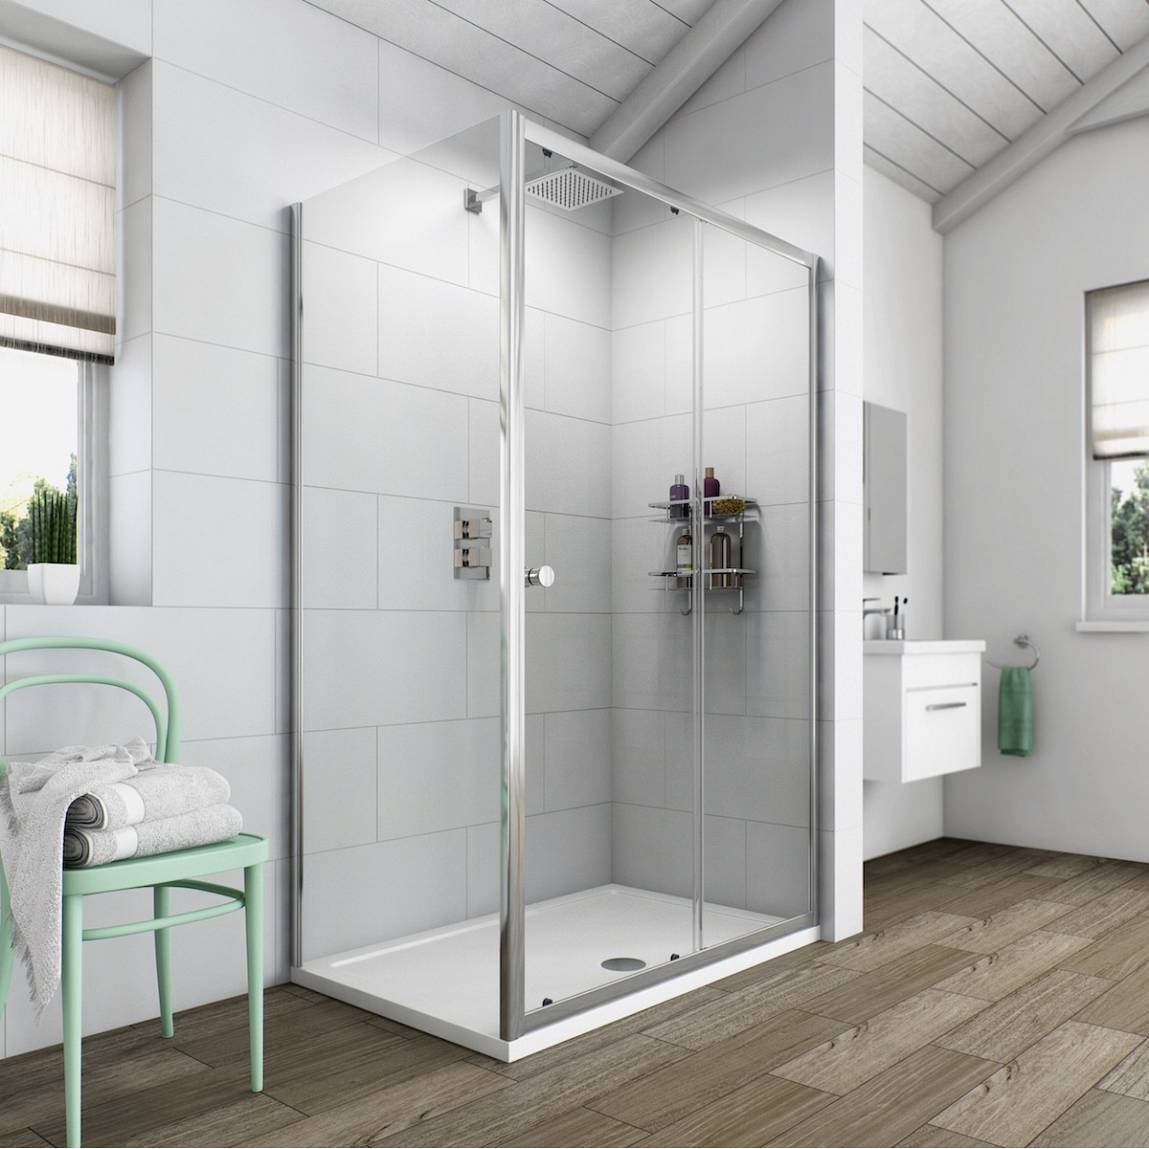 Image of Simplicity 6mm 1200 x 800 Sliding Shower Enclosure